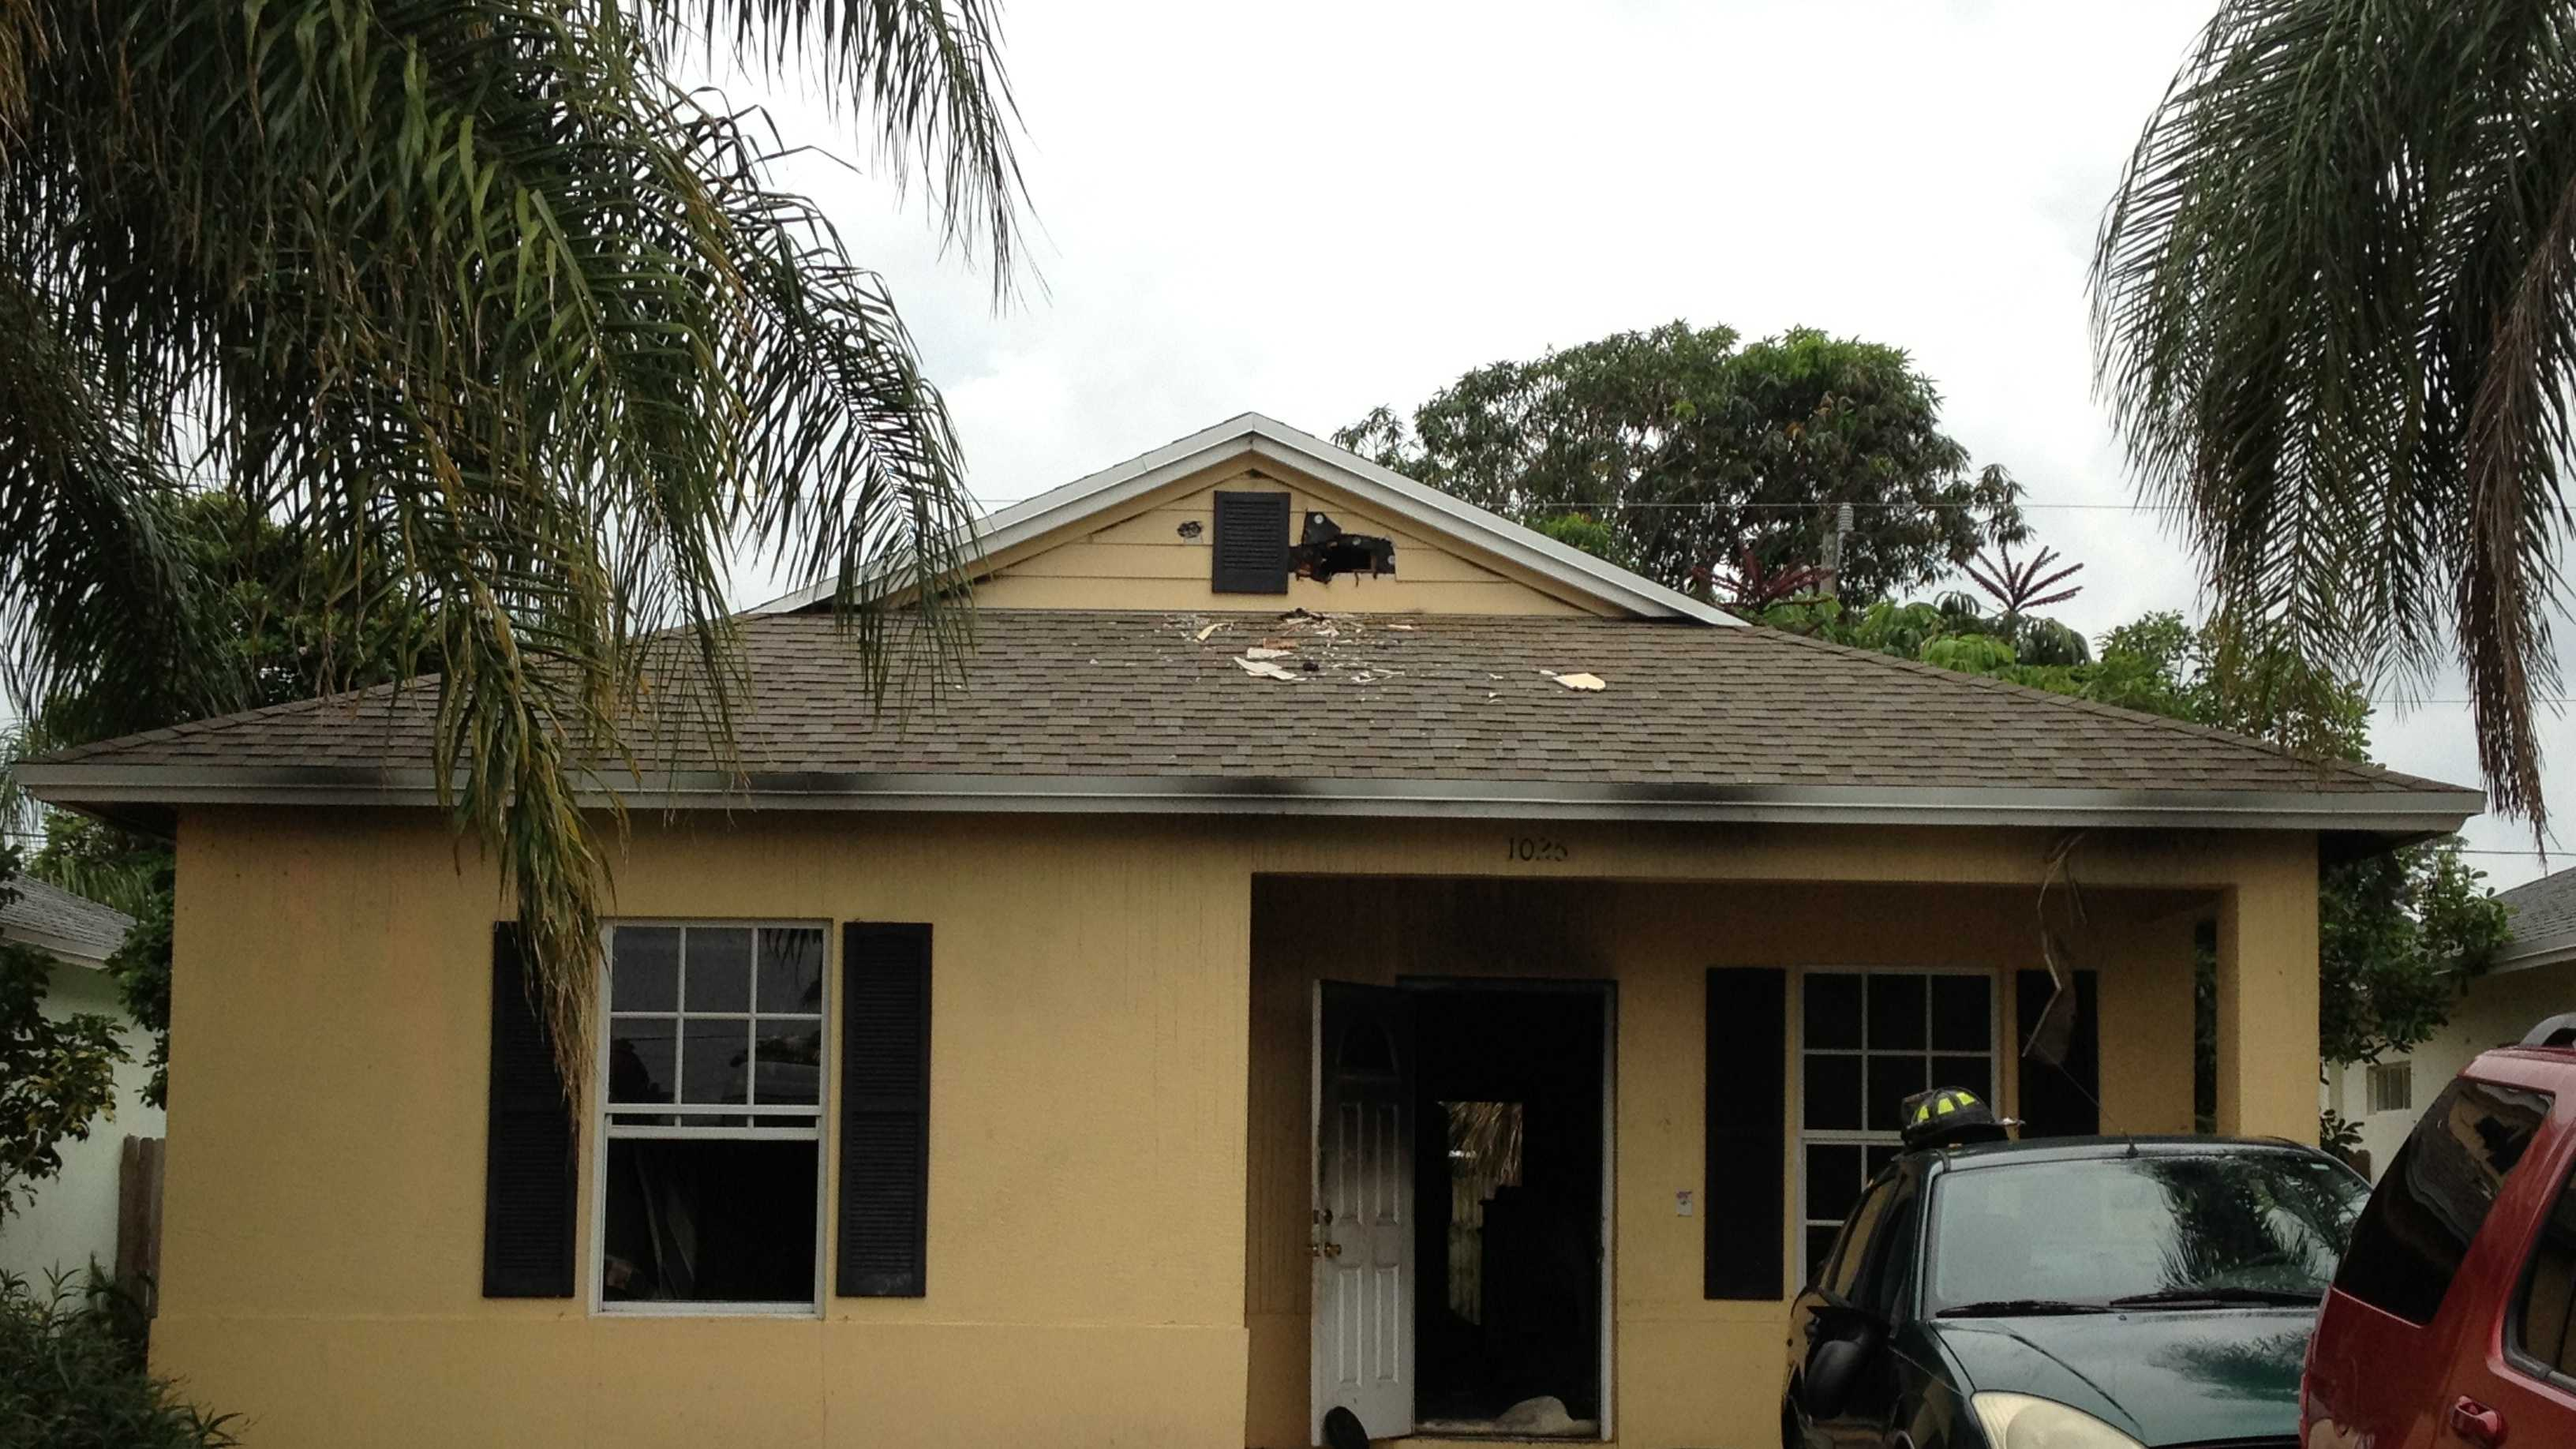 An adult and four children were displaced by a fire at their Lantana home.